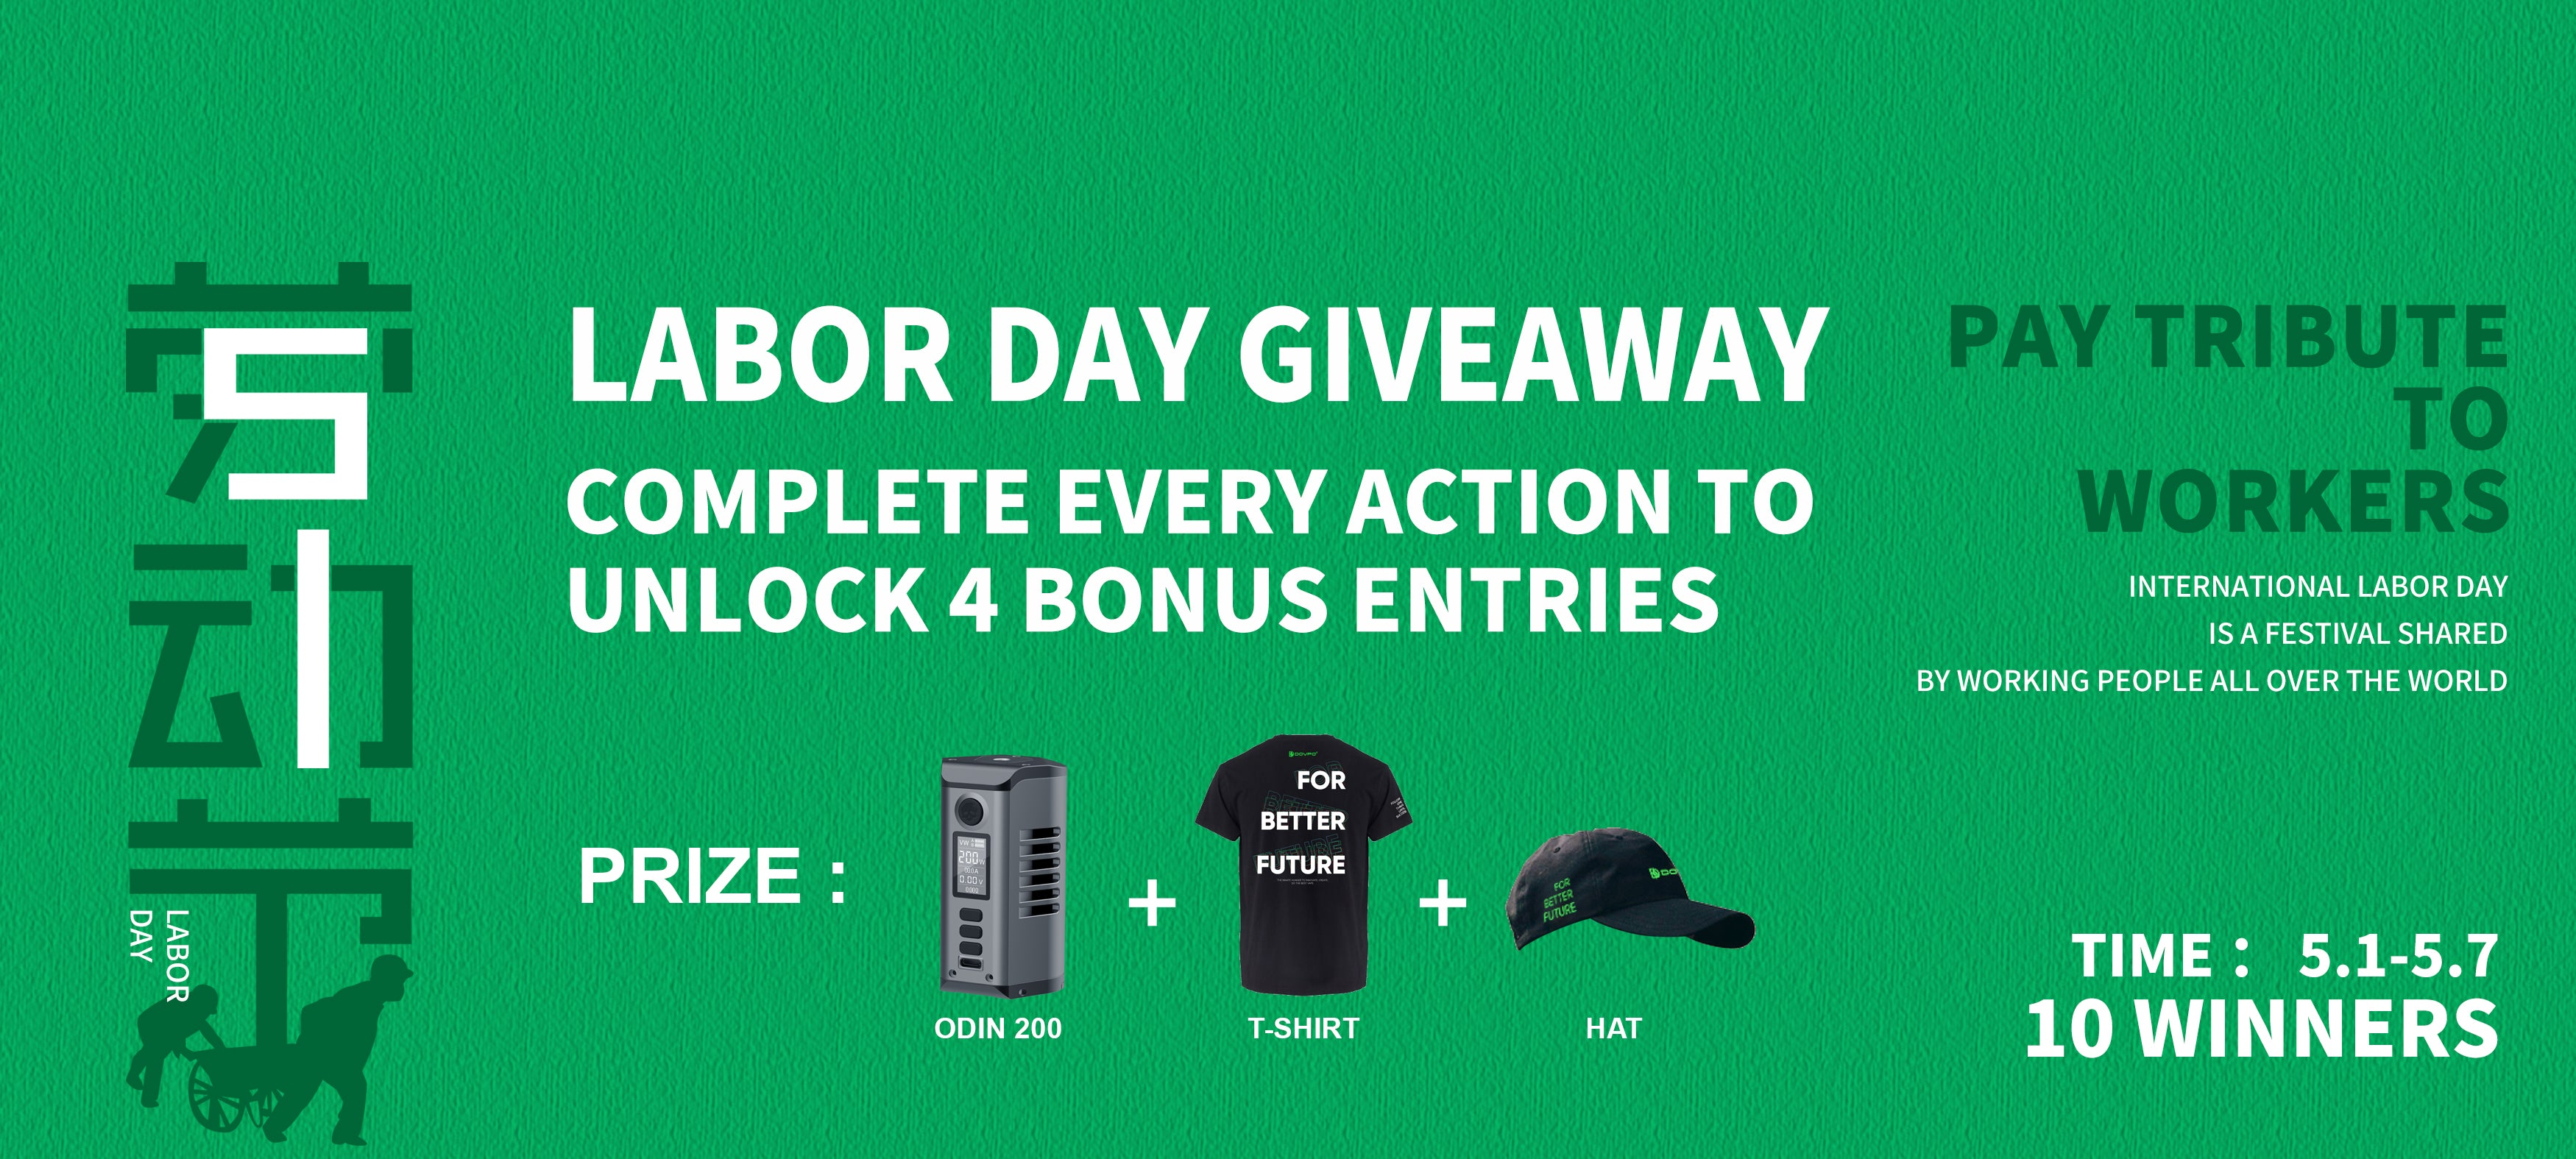 the labor day giveaway